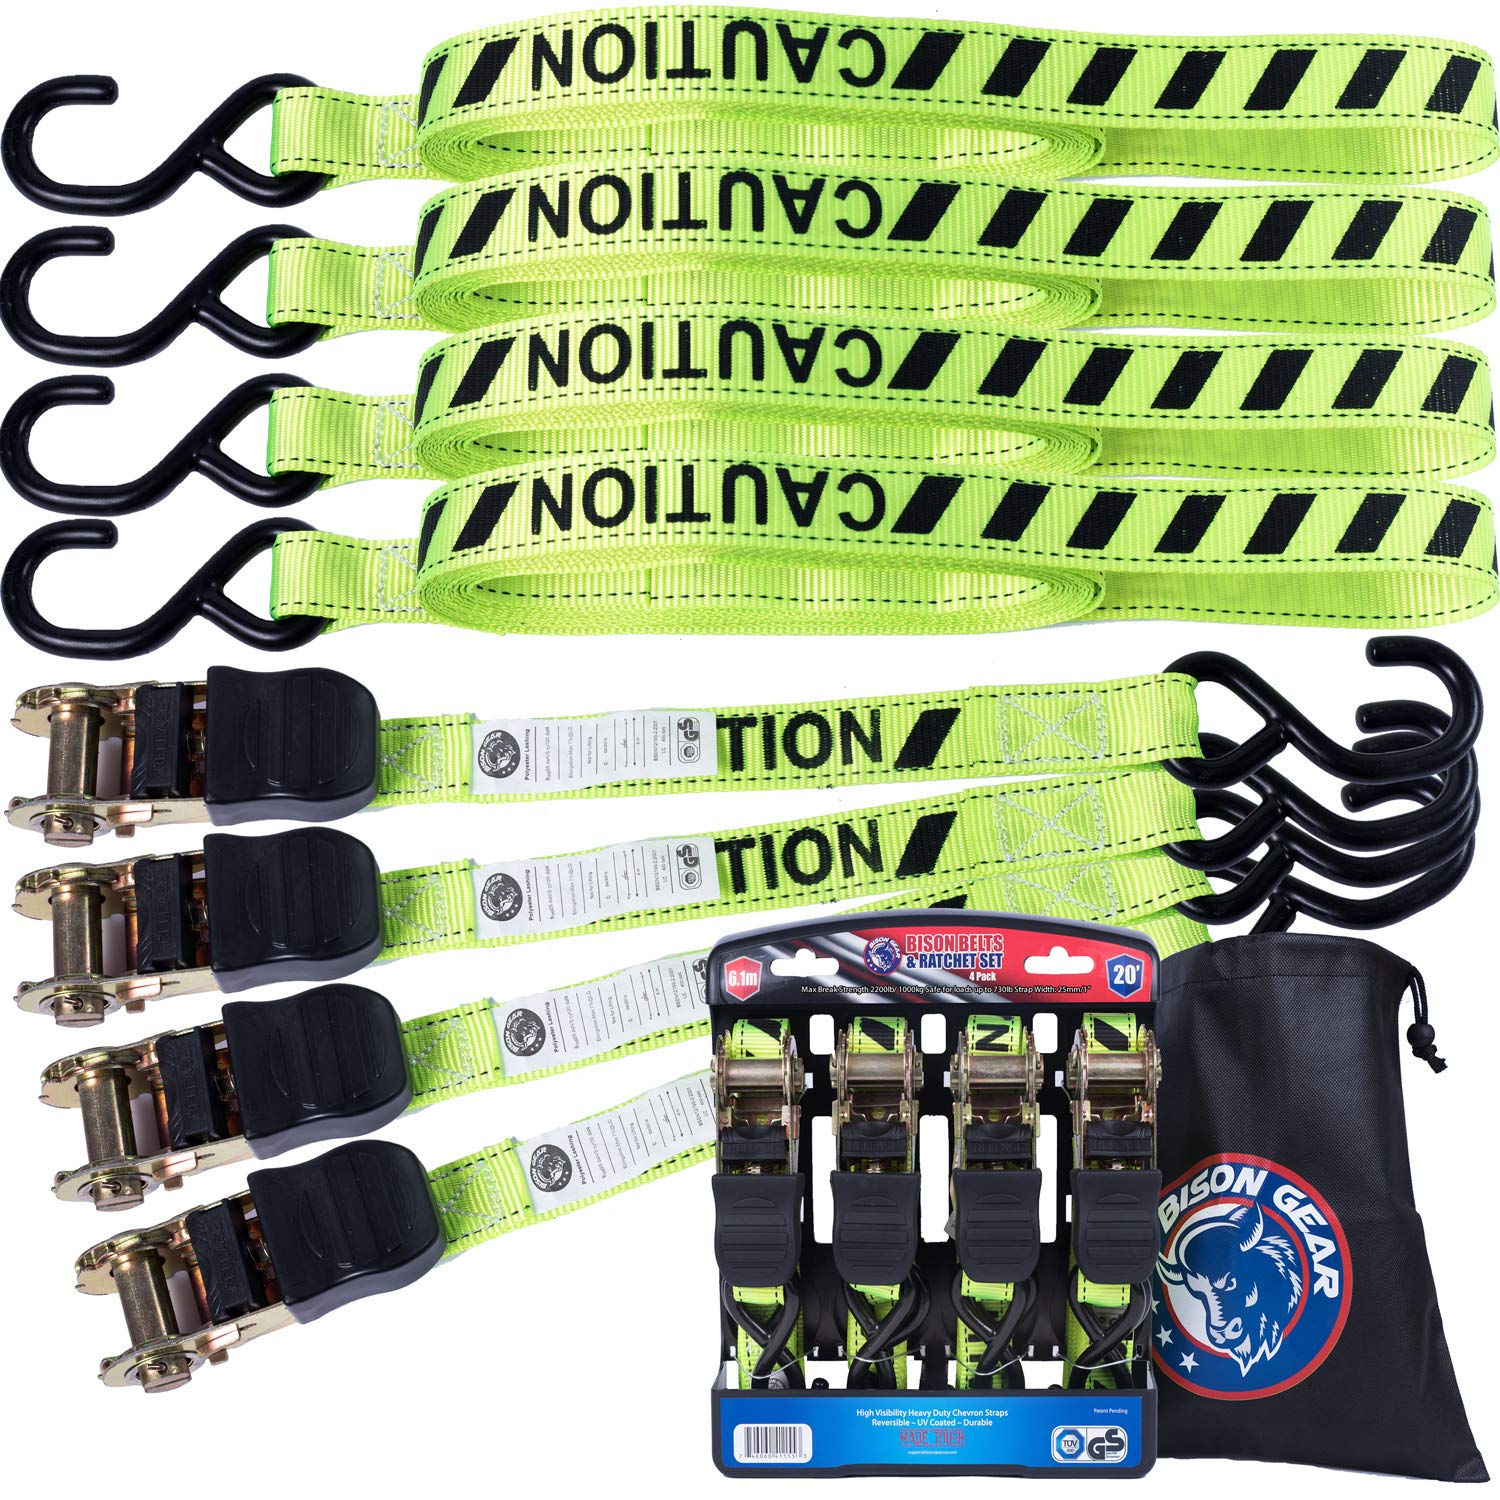 Ratchet Tie Down Straps 20 ft 4 Pack by Bison Gear High Visibility UV Resistant 2200lb Heavy Duty Cargo Straps with Ergonomic Rubber Grips & Coated Deep S Hooks - Safety Standards Certified by Bison Gear